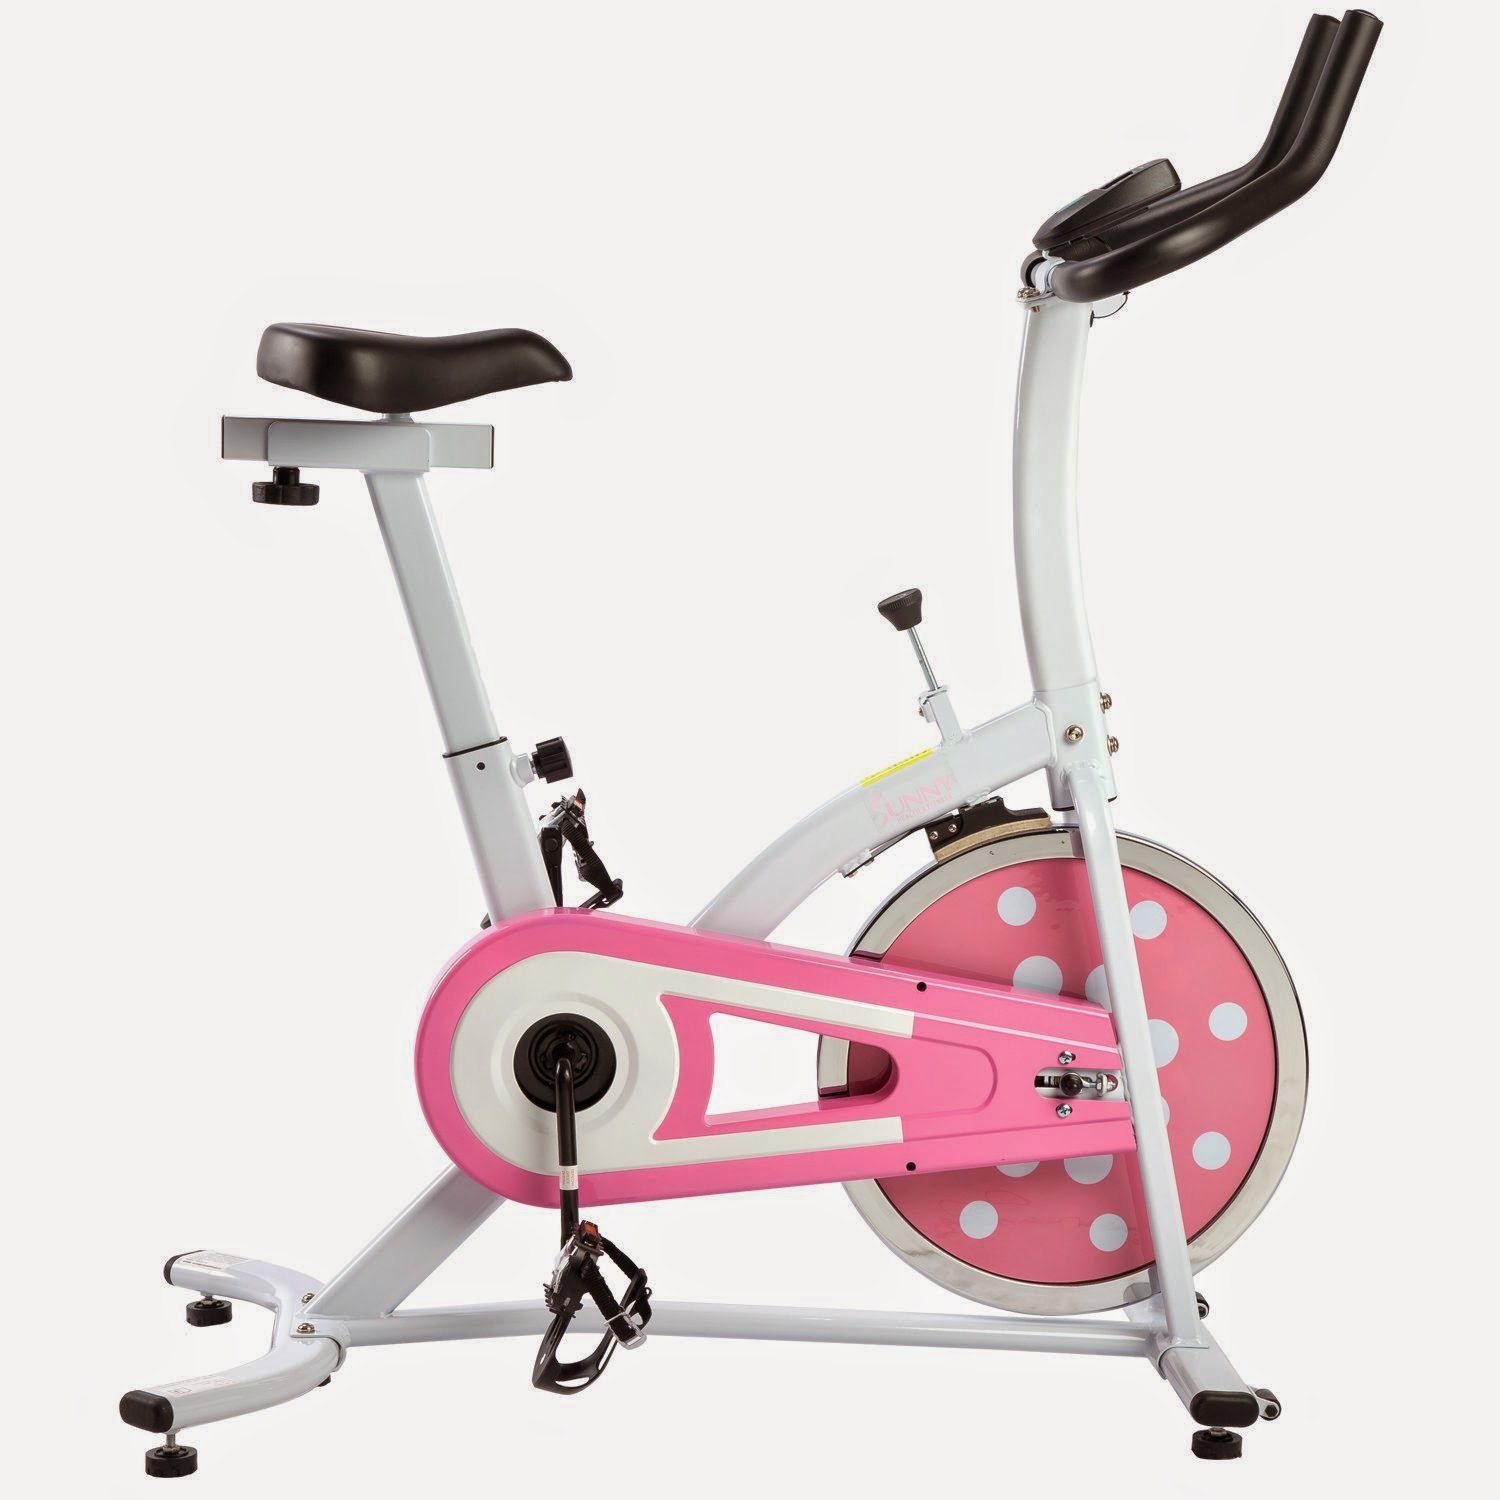 Sunny Health & Fitness Pink Indoor Cycling Bike / Spin Bike, review features, adjustable resistance, 22 lbs flywheel, chain drive